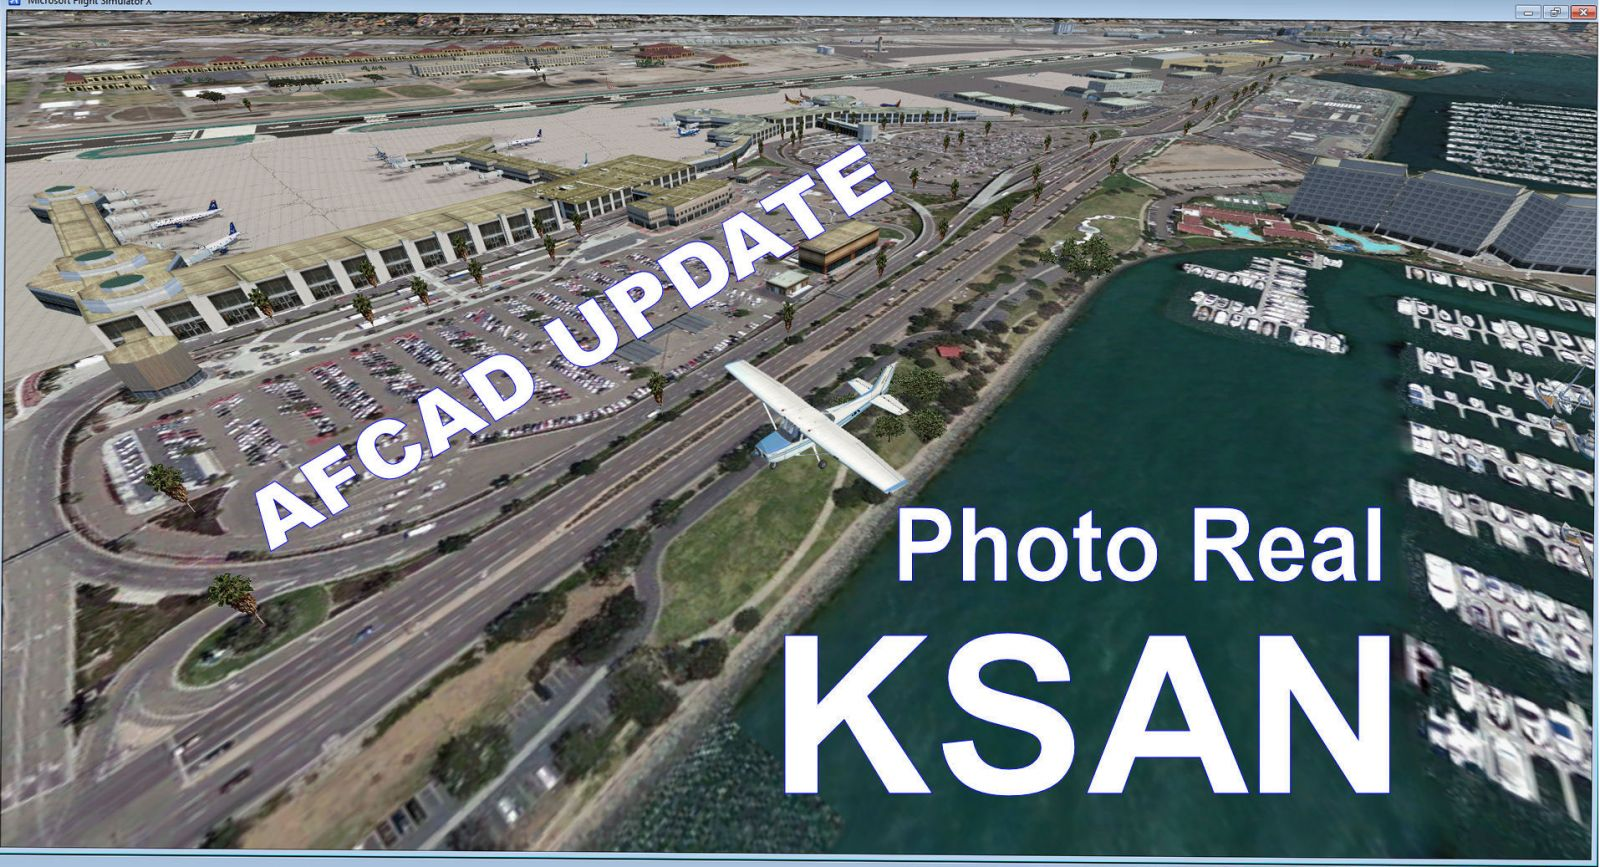 Fsx Ksan Photo Real Scenery on utility frequency